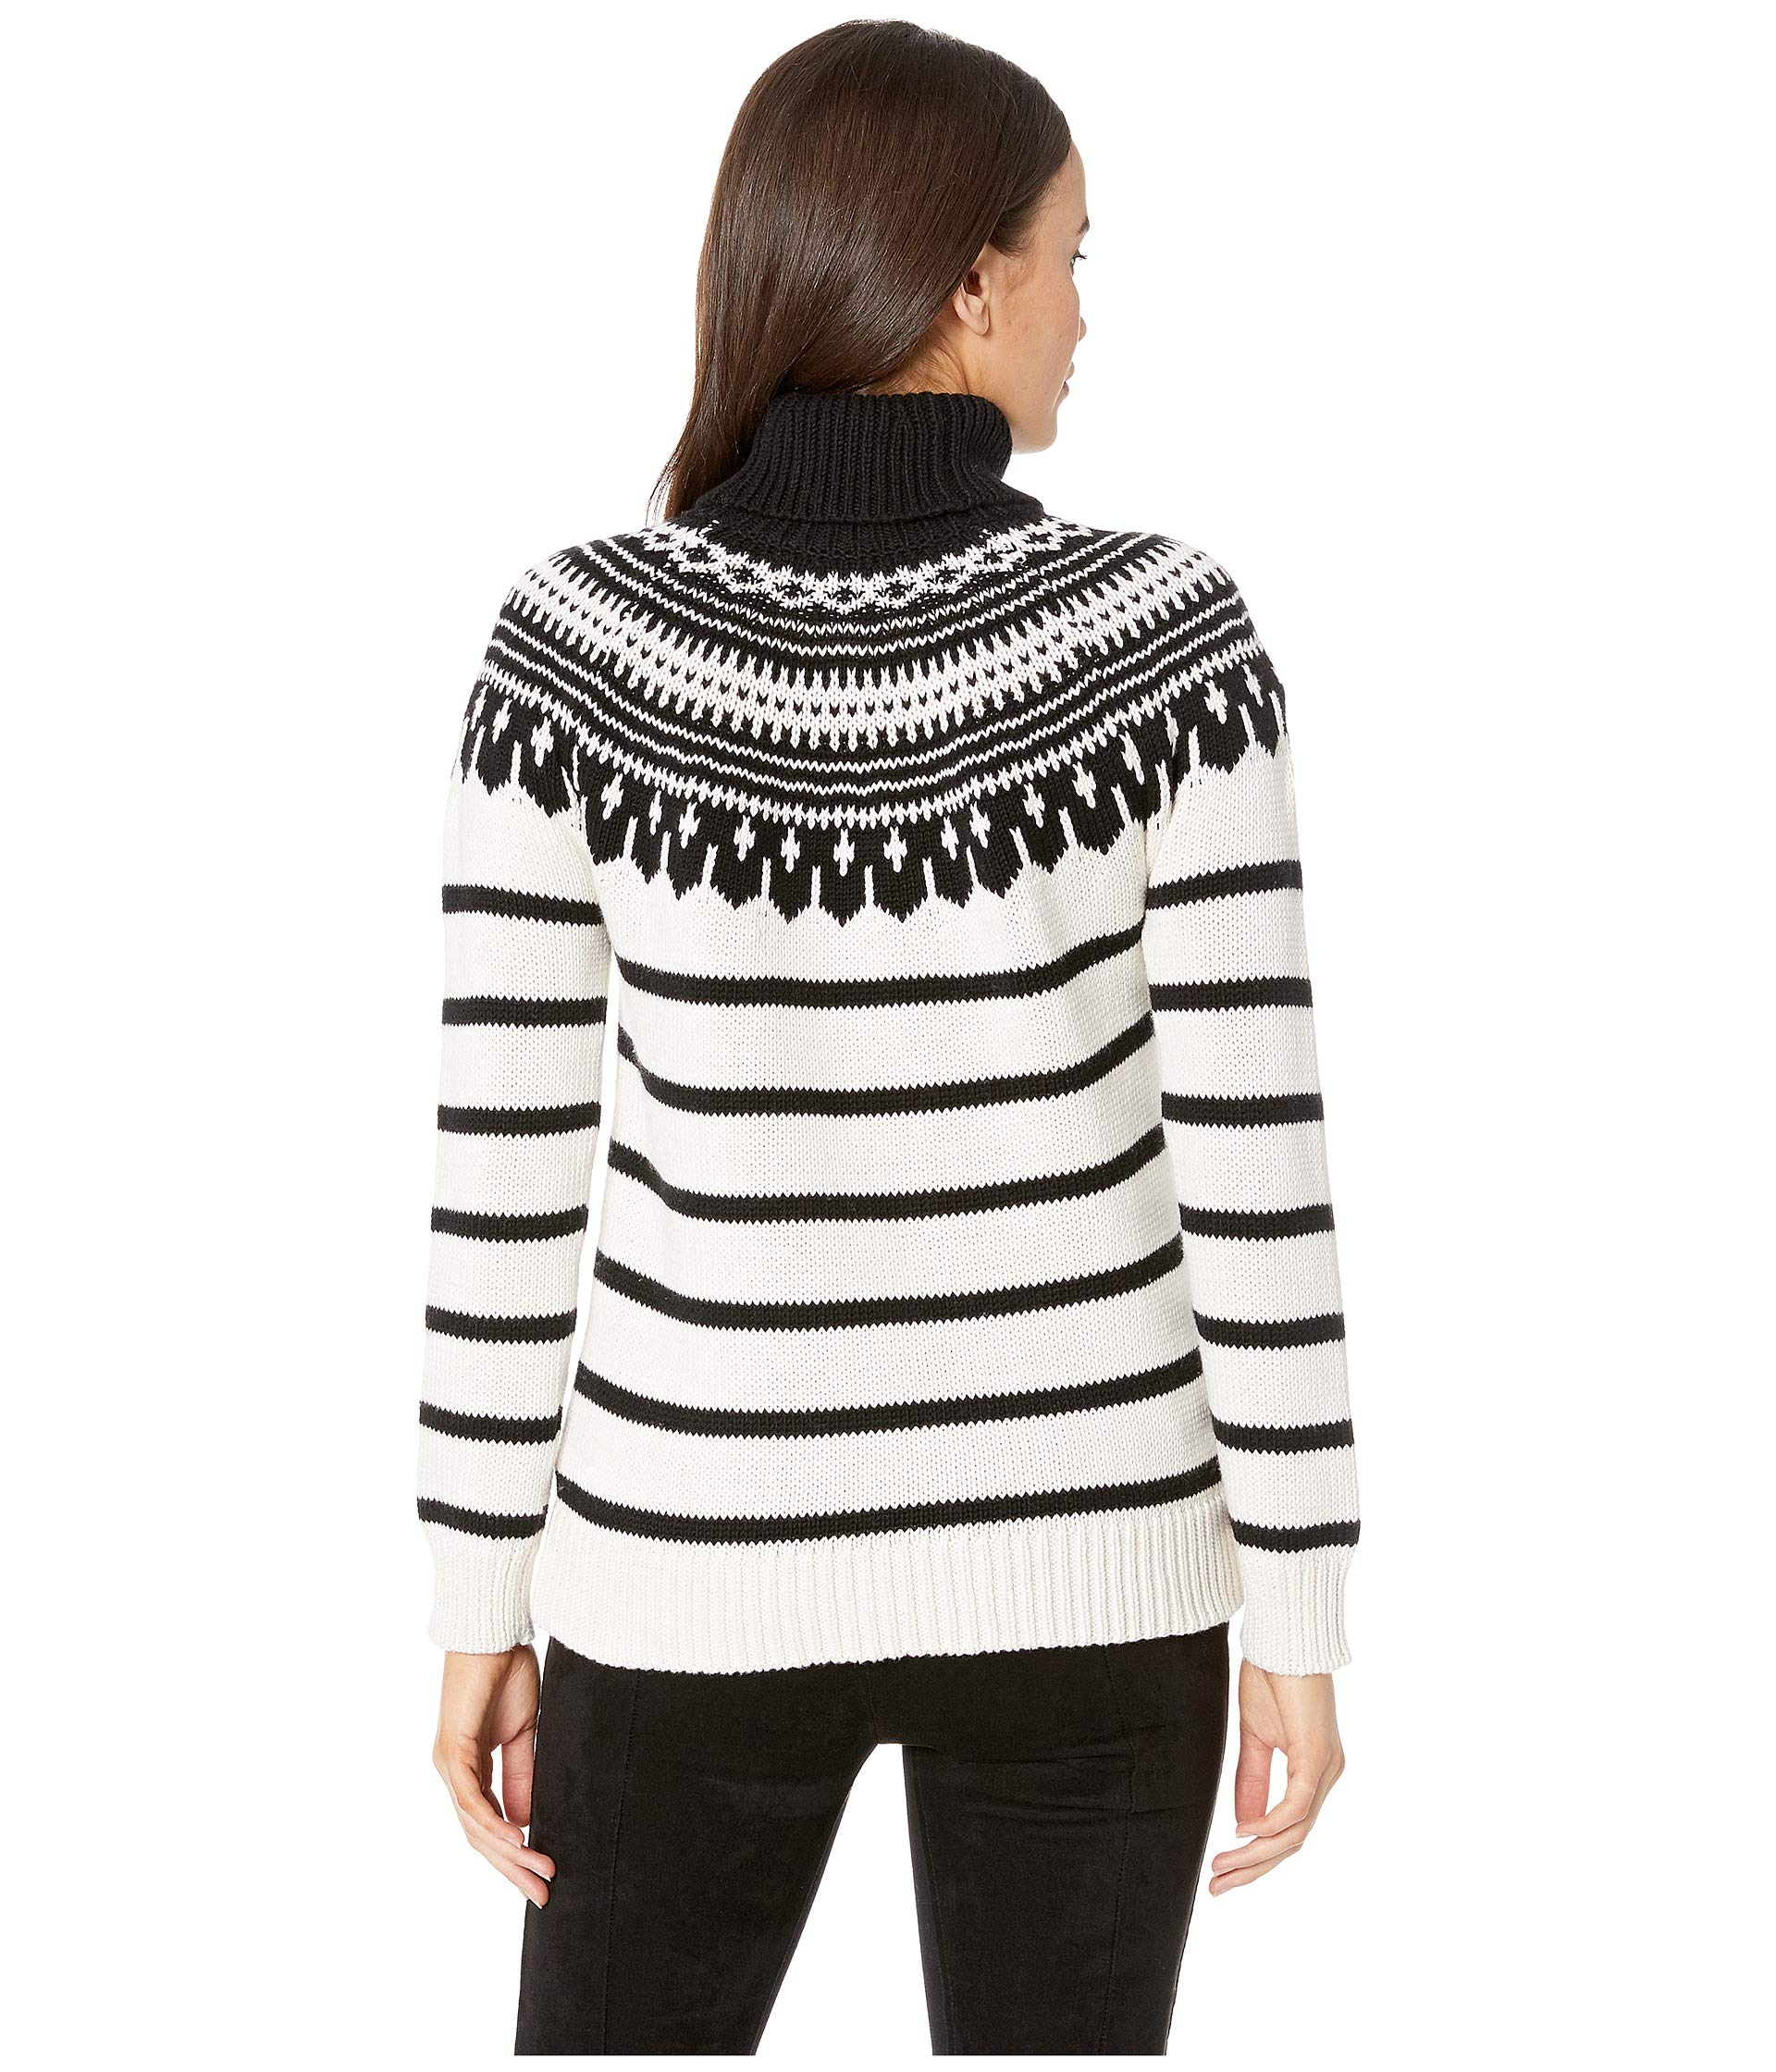 polo Cotton Cream Sweater blend Lauren Multi Ralph Mascarpone Turtleneck Black HxOY0Yq